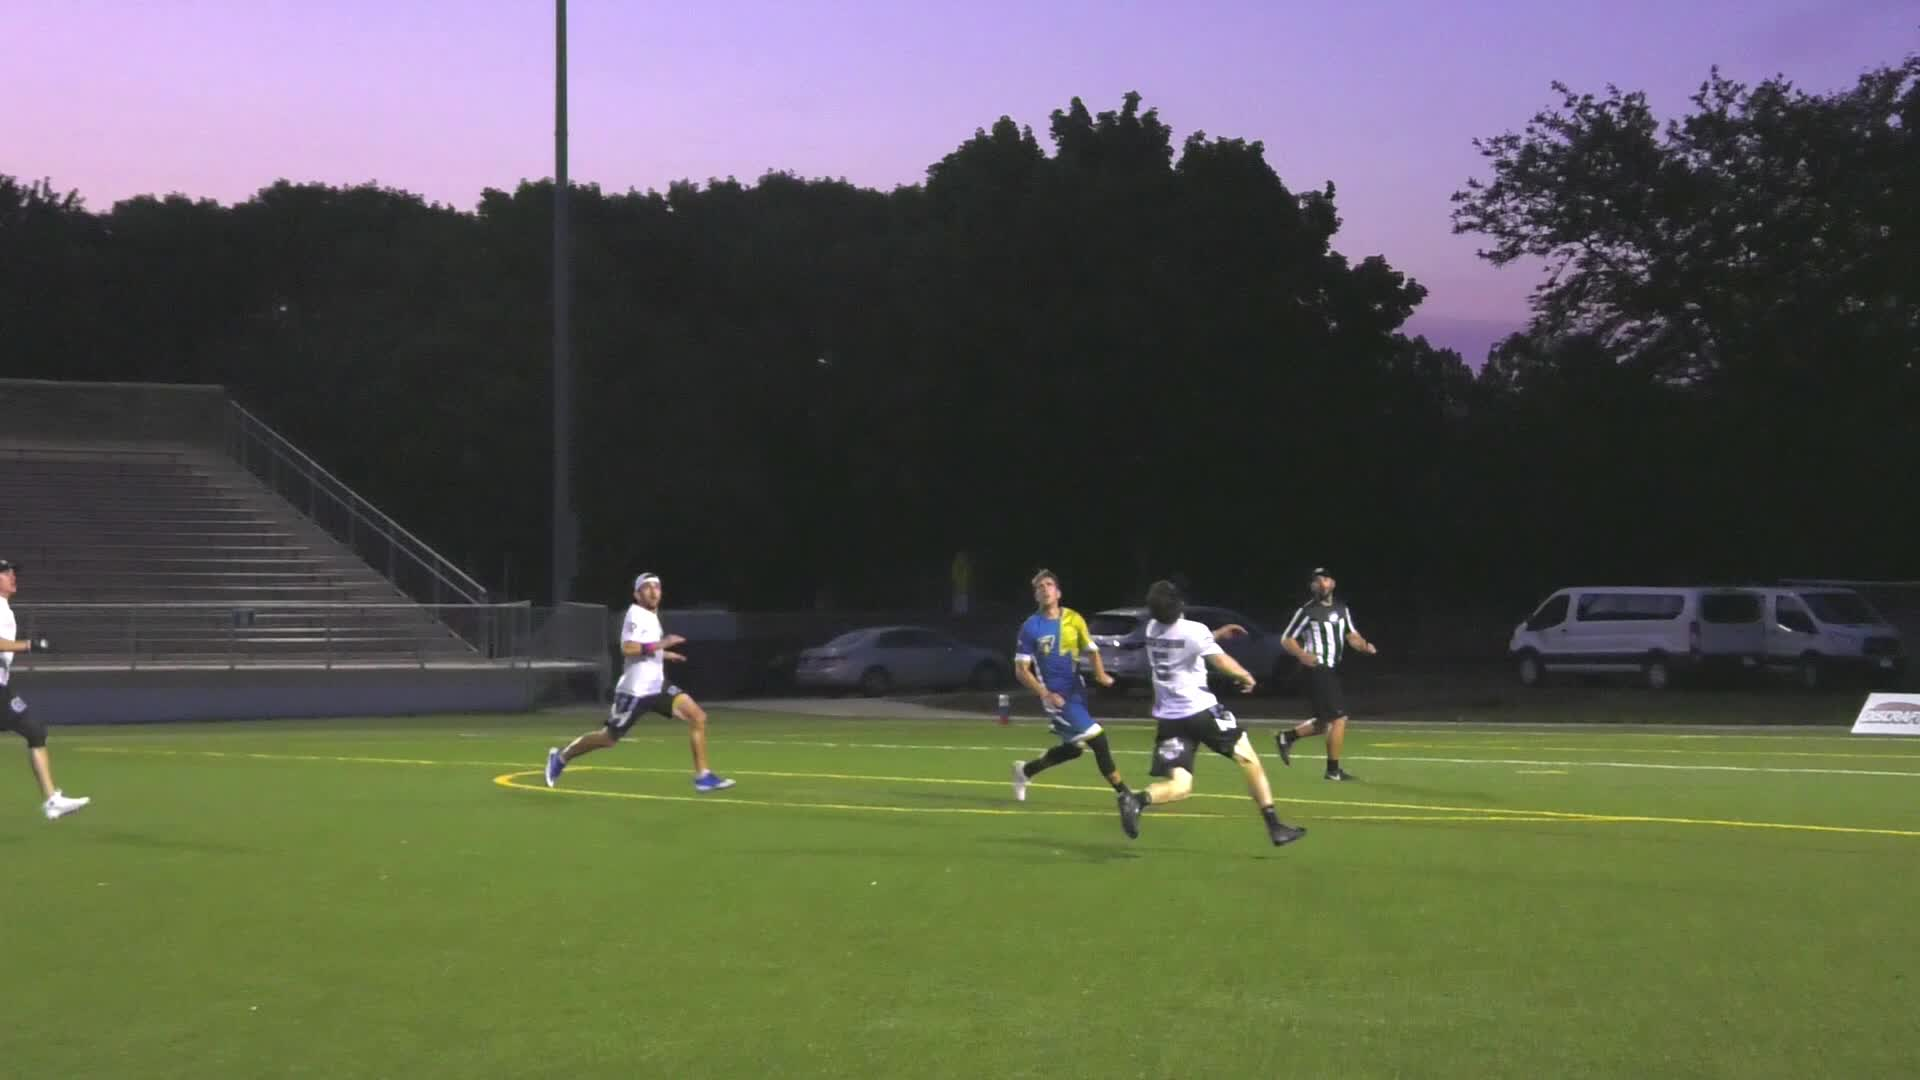 american ultimate disc league, audl, ultimate, ultimate frisbee, Pat Shriwise Sky Goal GIFs